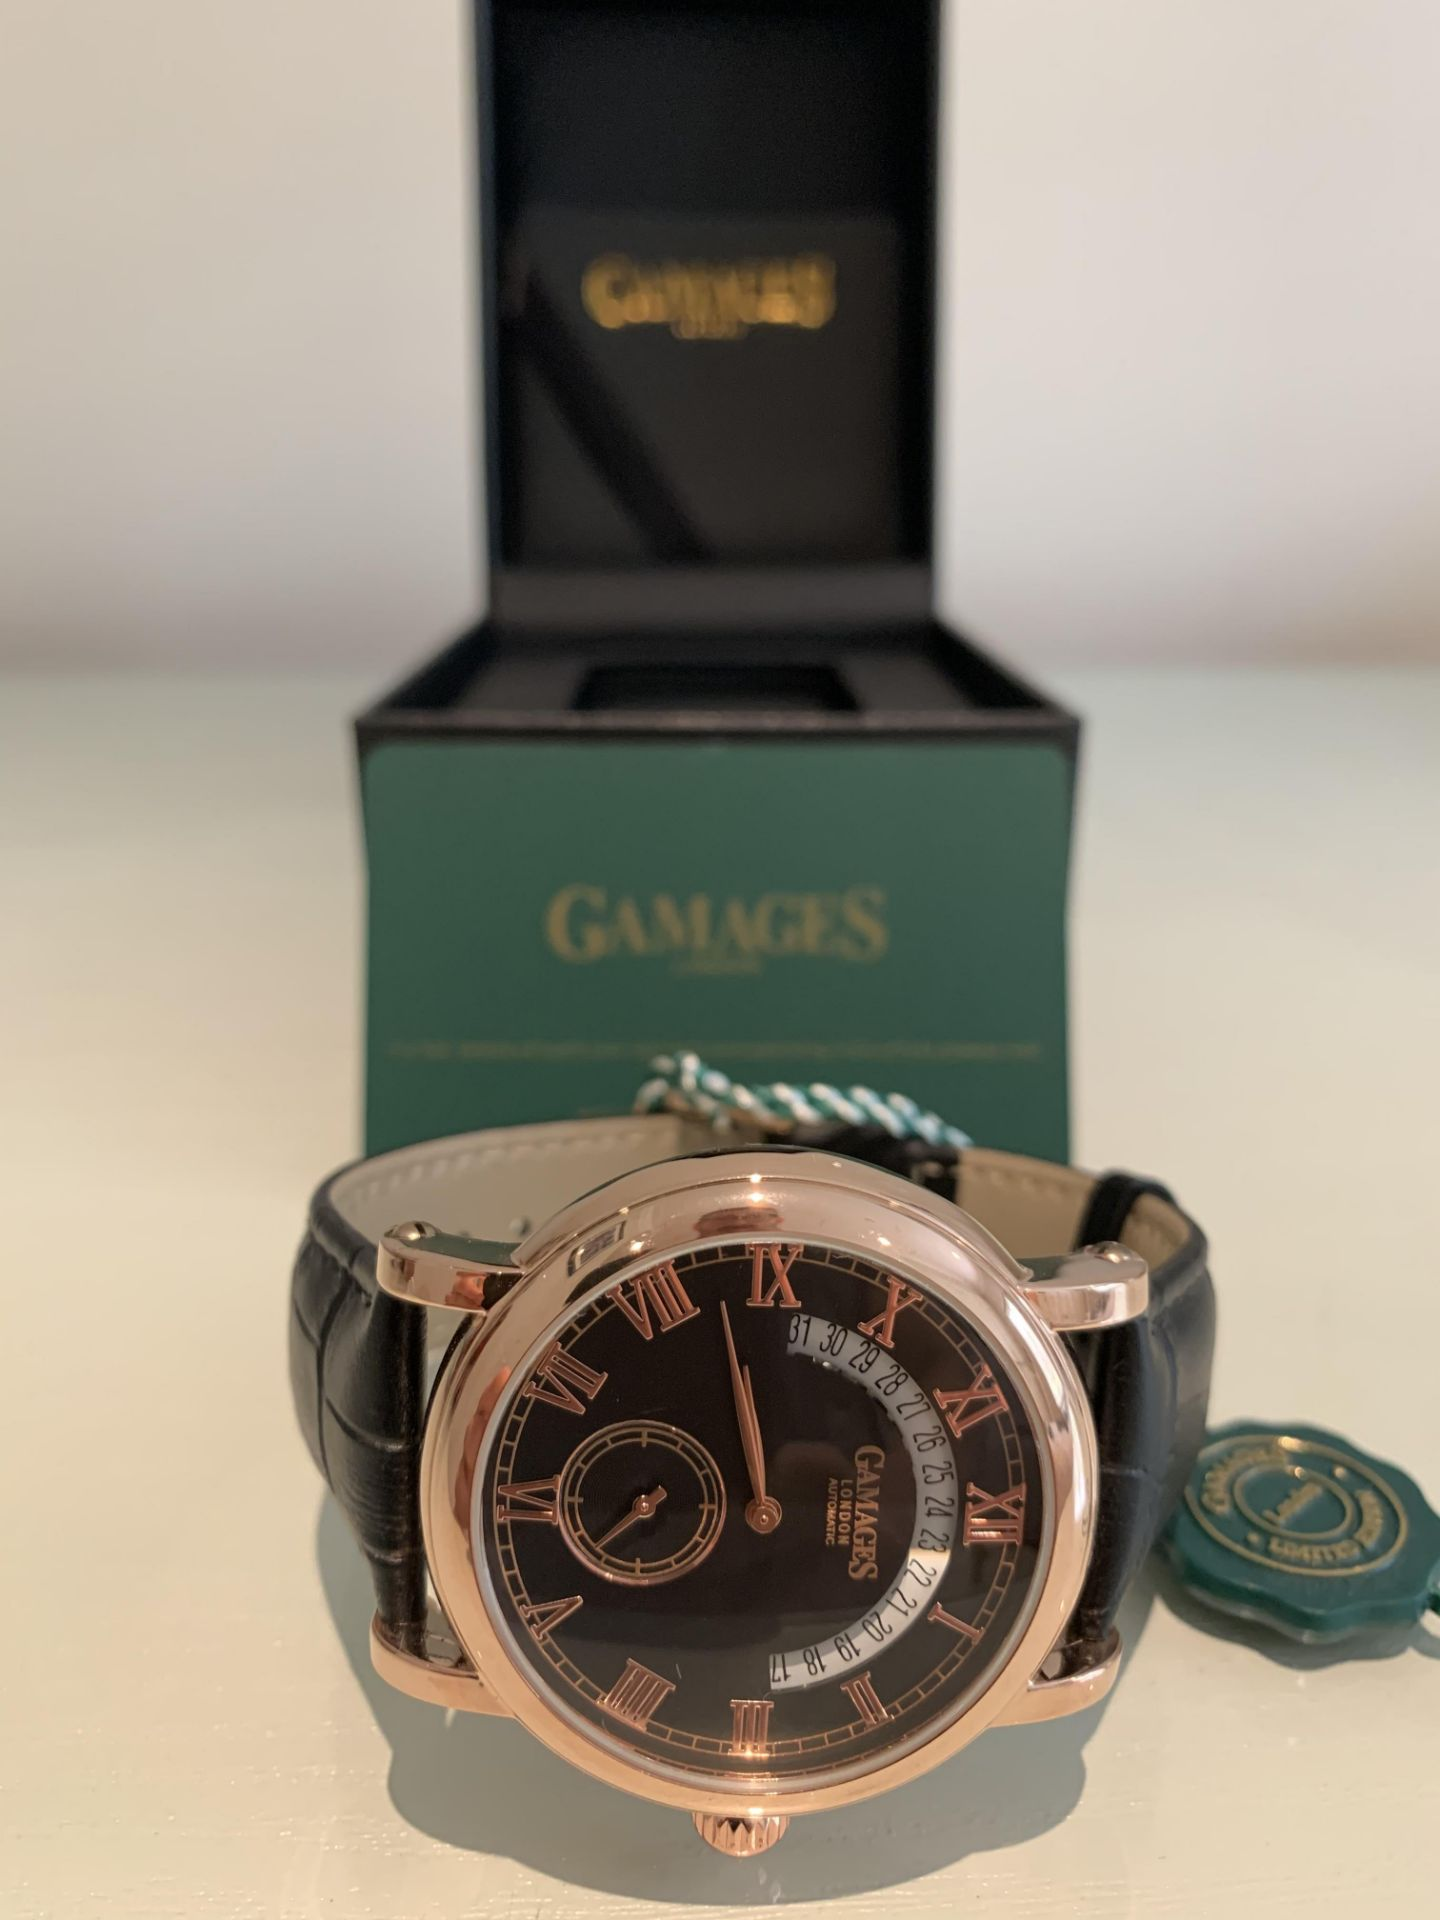 Limited Edition Hand Assembled Gamages Split Date Automatic Rose – 5 Year Warranty & Free Delivery - Image 3 of 5